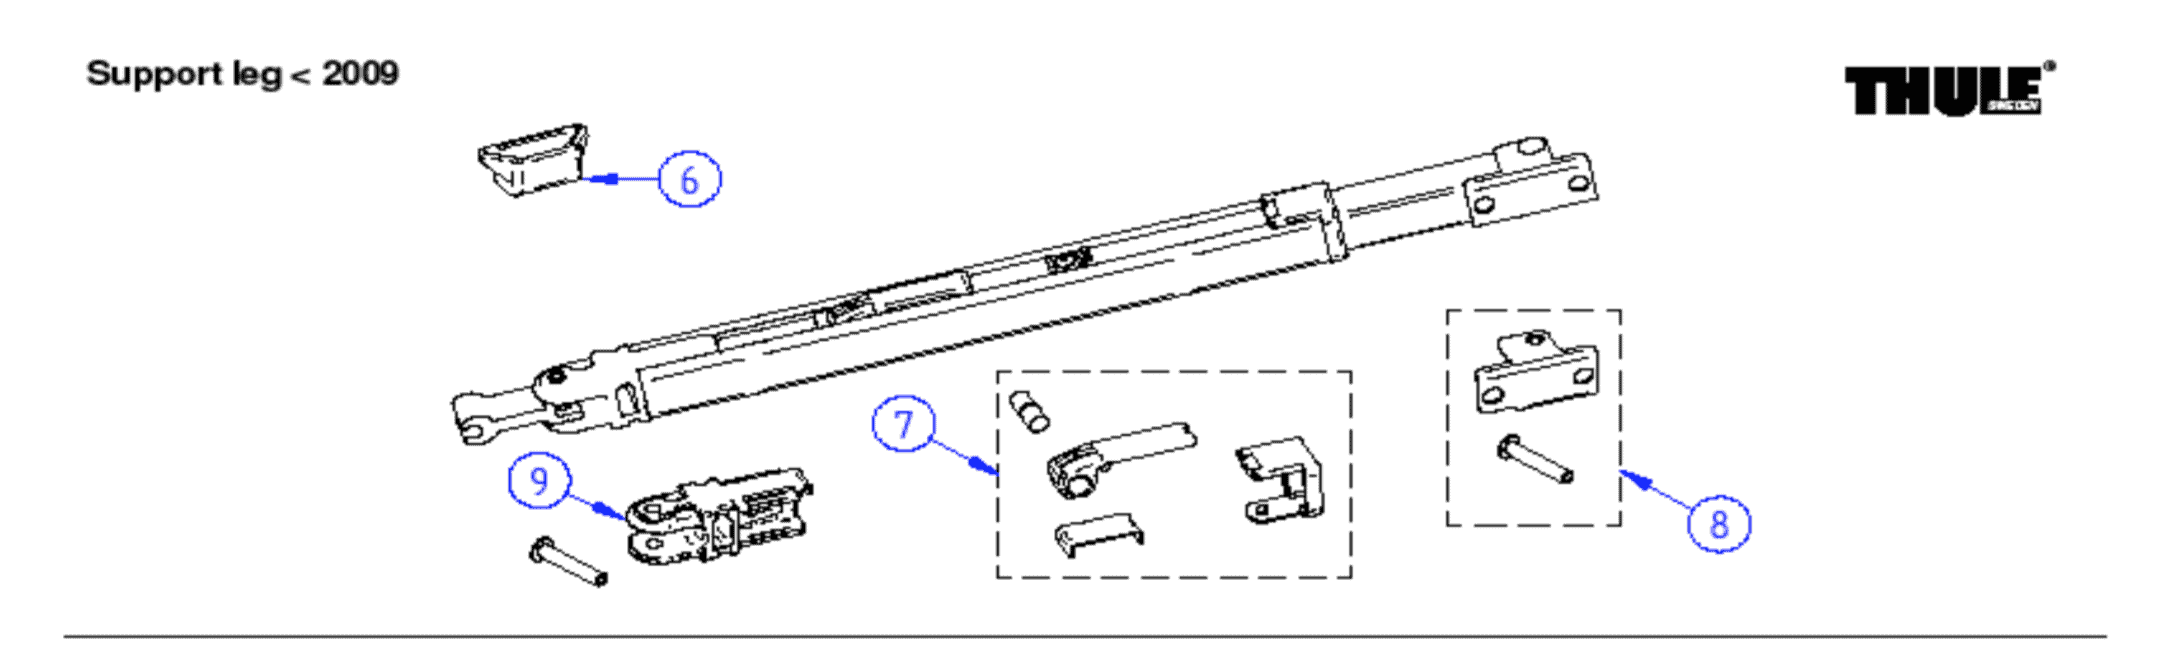 Thule Omnistor Support Leg Spare Parts by Rose Awnings